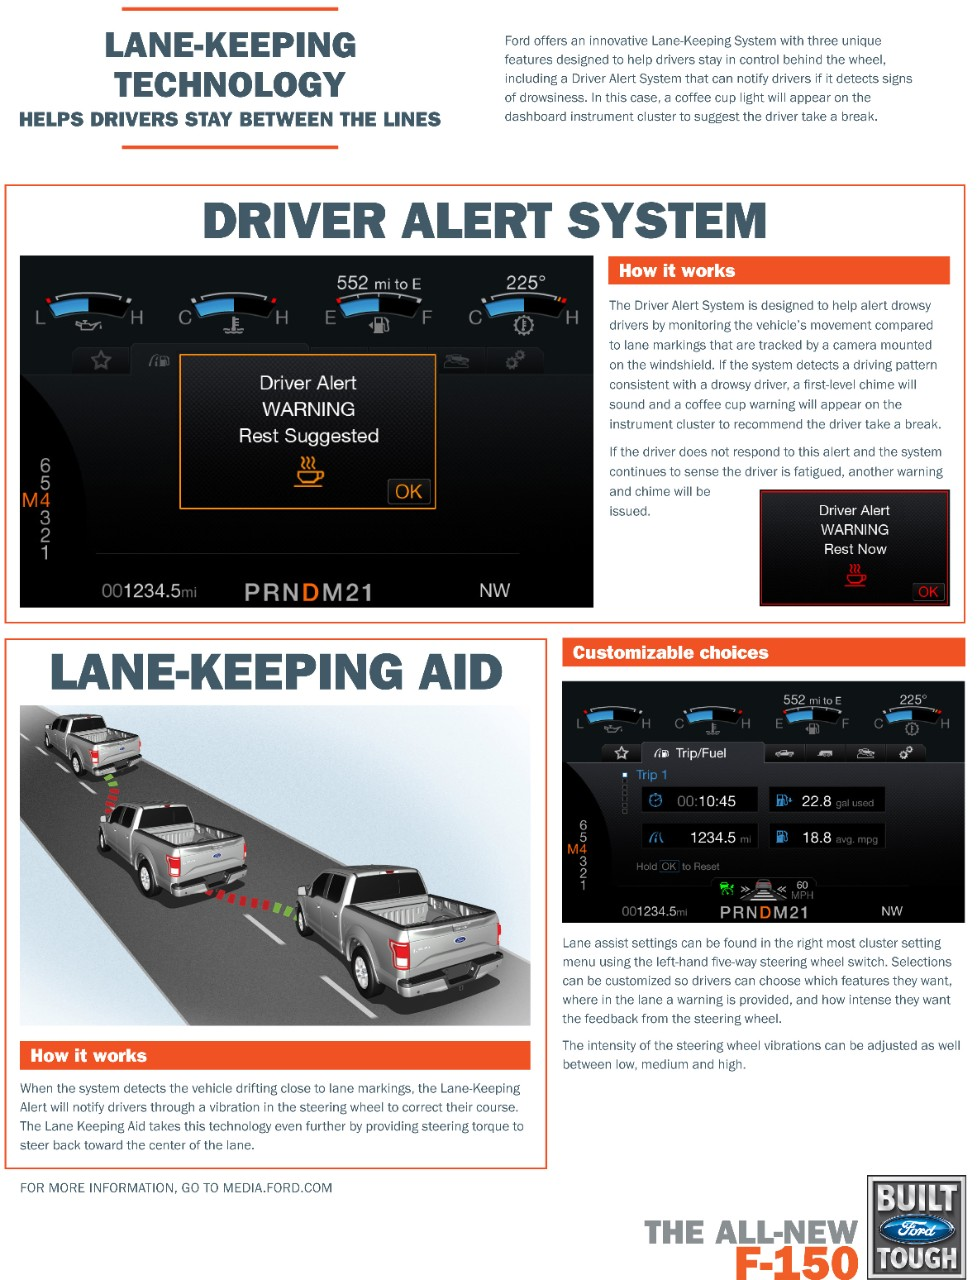 2015 Ford F-150 lane keeping technology